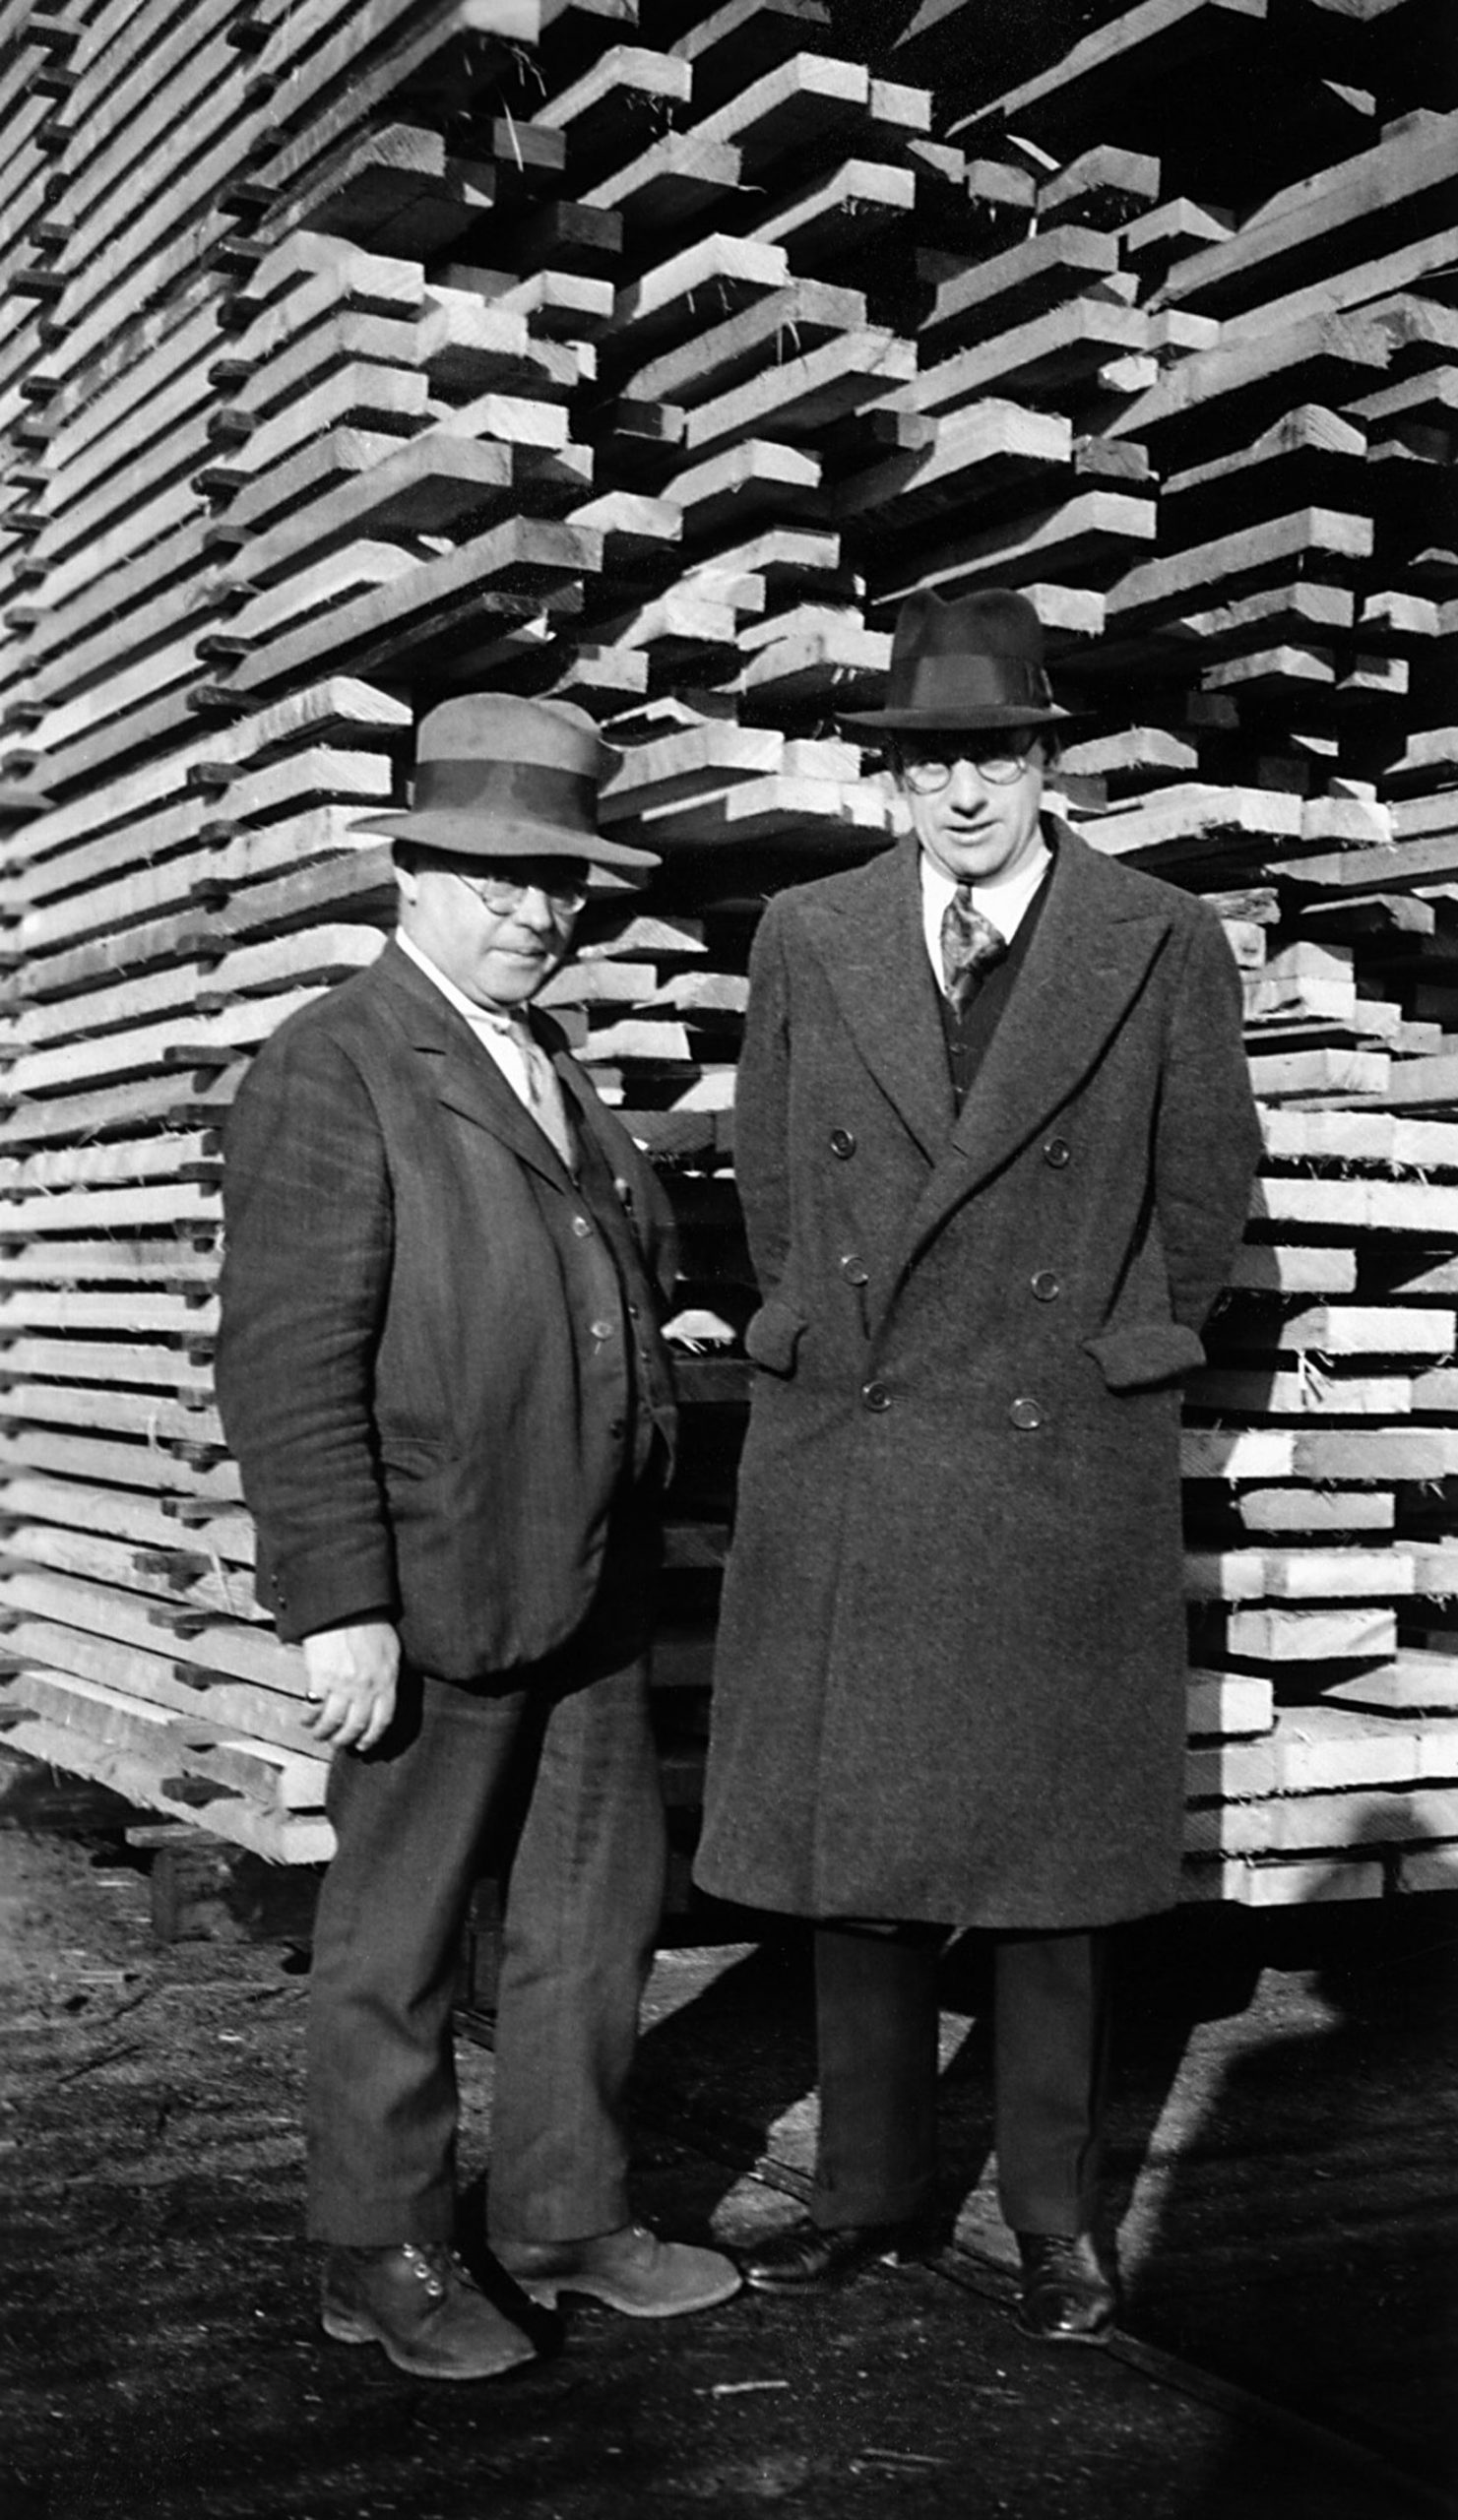 James Dickson Pollock (left) and Adam Dickson (right) at Hillcrest Lumber, Duncan, circa 1930 (photo courtesy of Bruce Pollock. Used with permission)